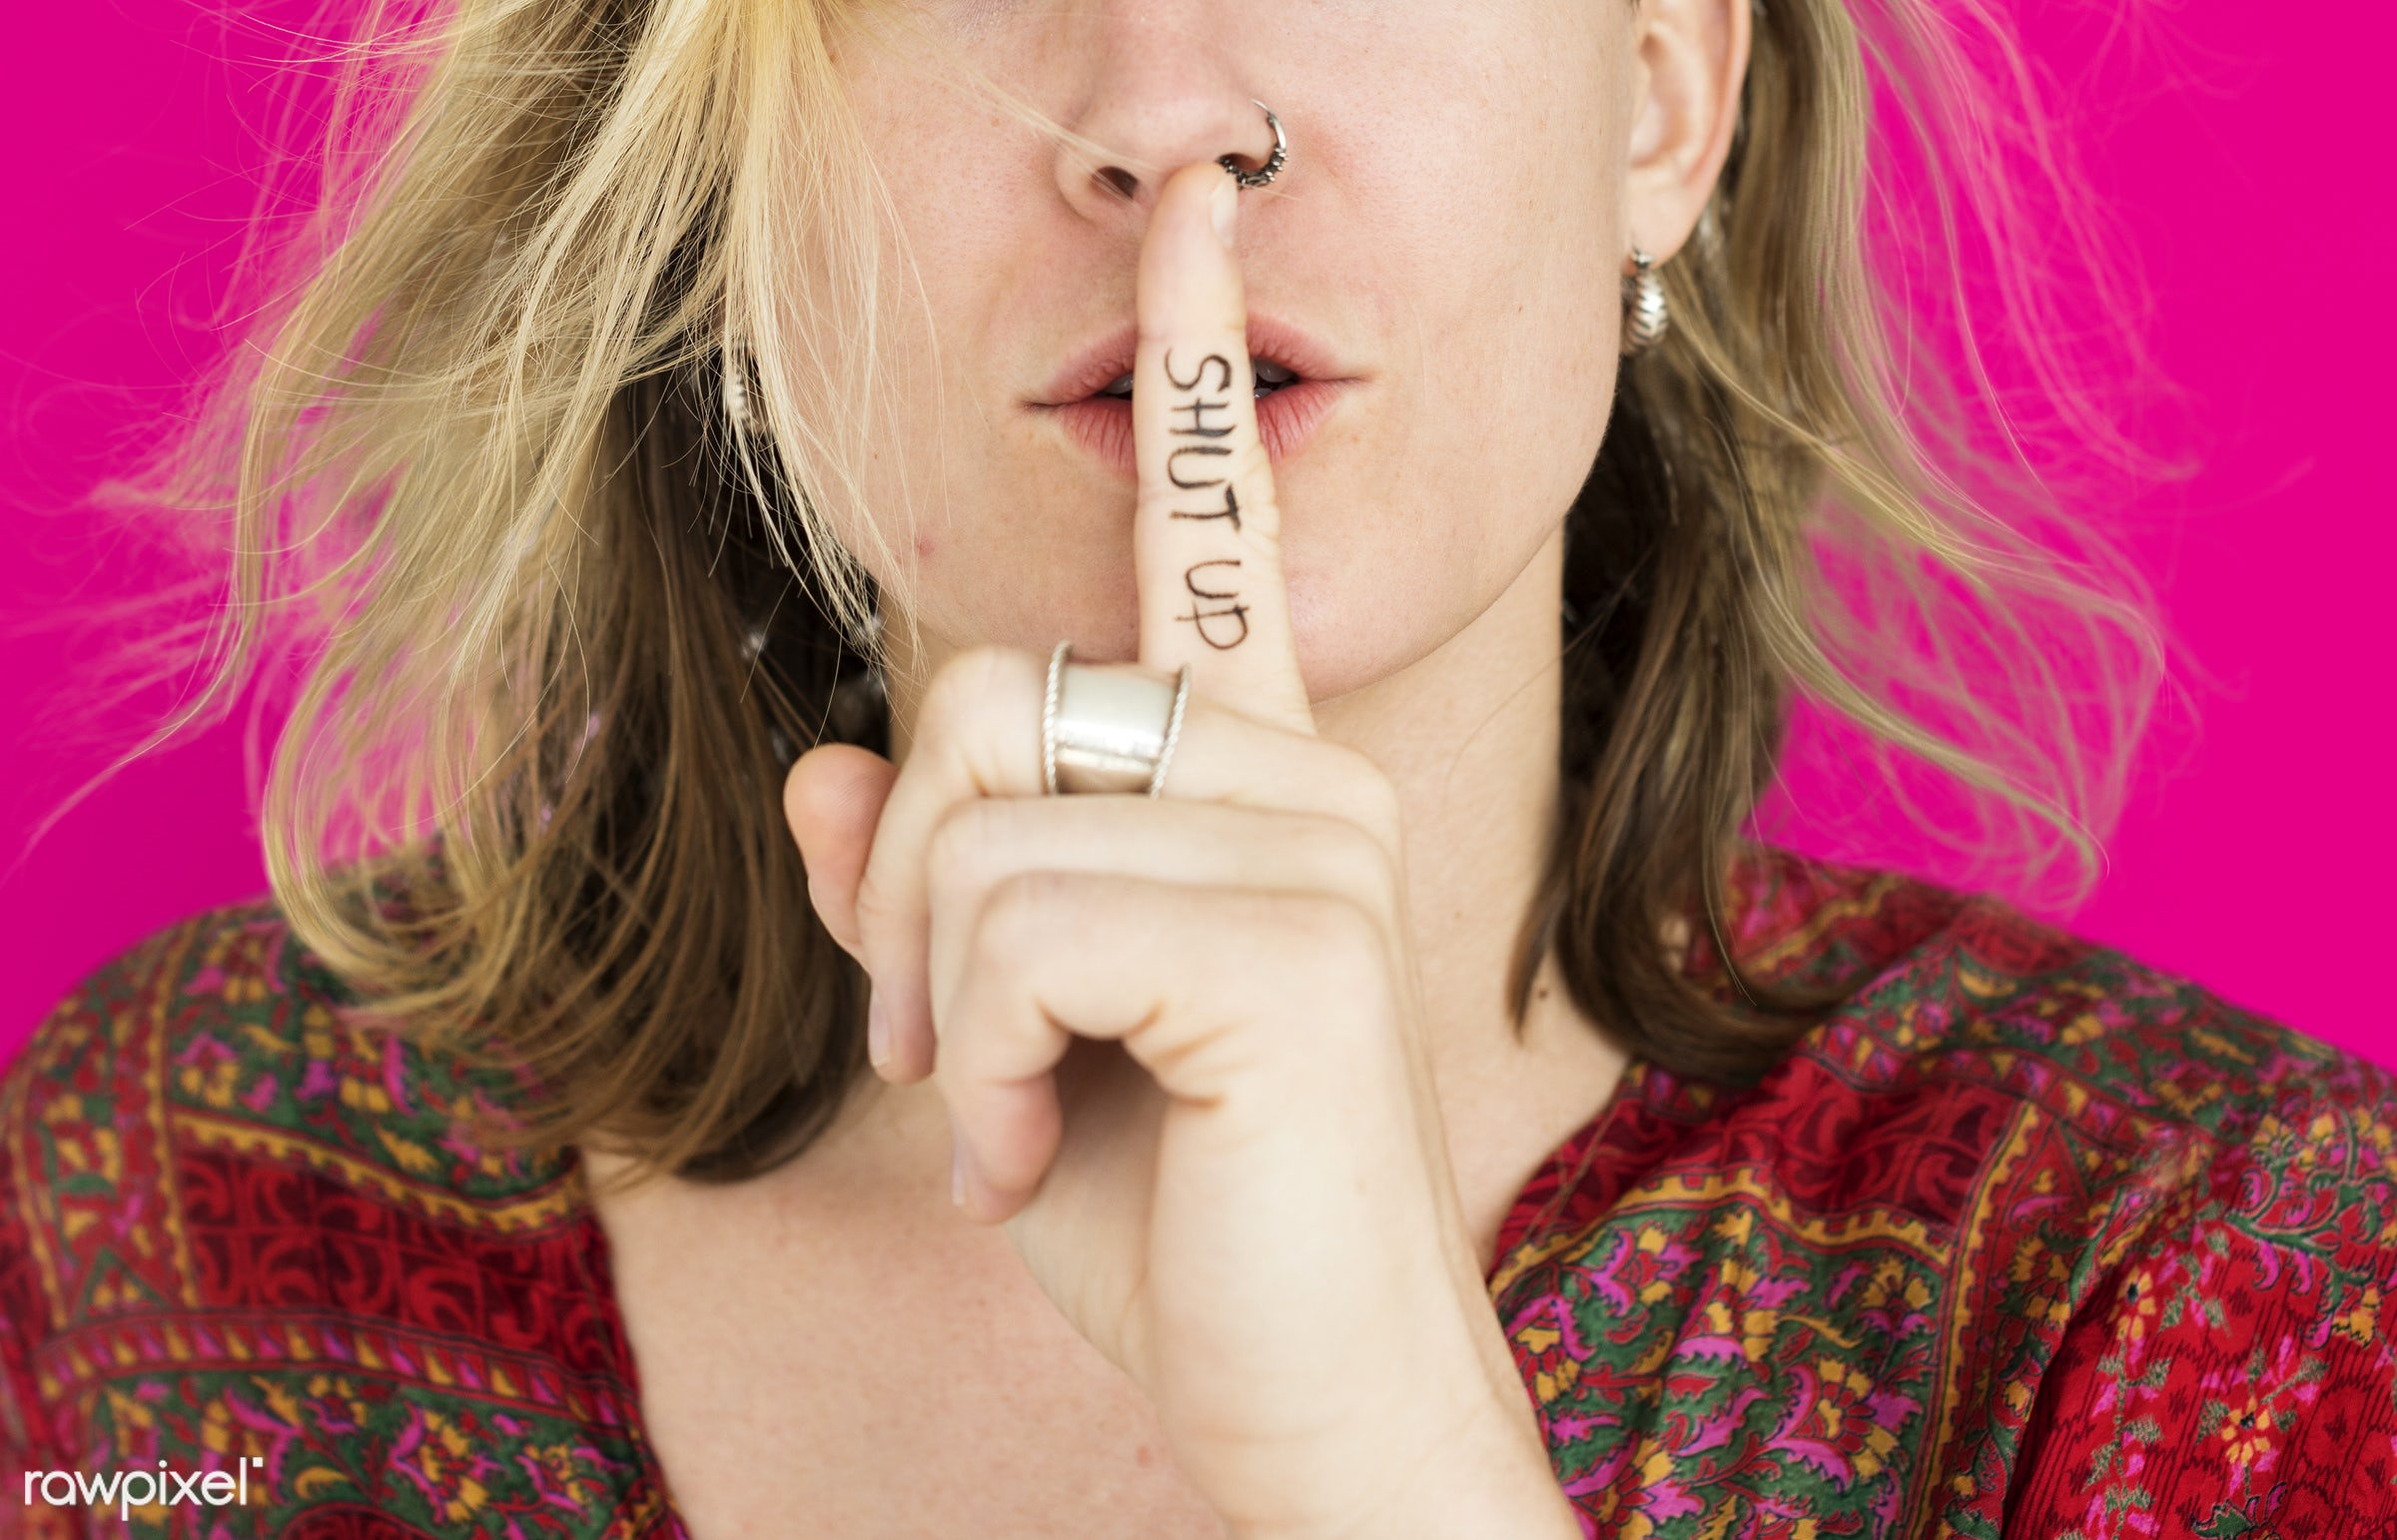 studio, expression, face, person, beauty, shut up, cute, pretty, people, finger on lips, girl, woman, casual, pink, shh,...